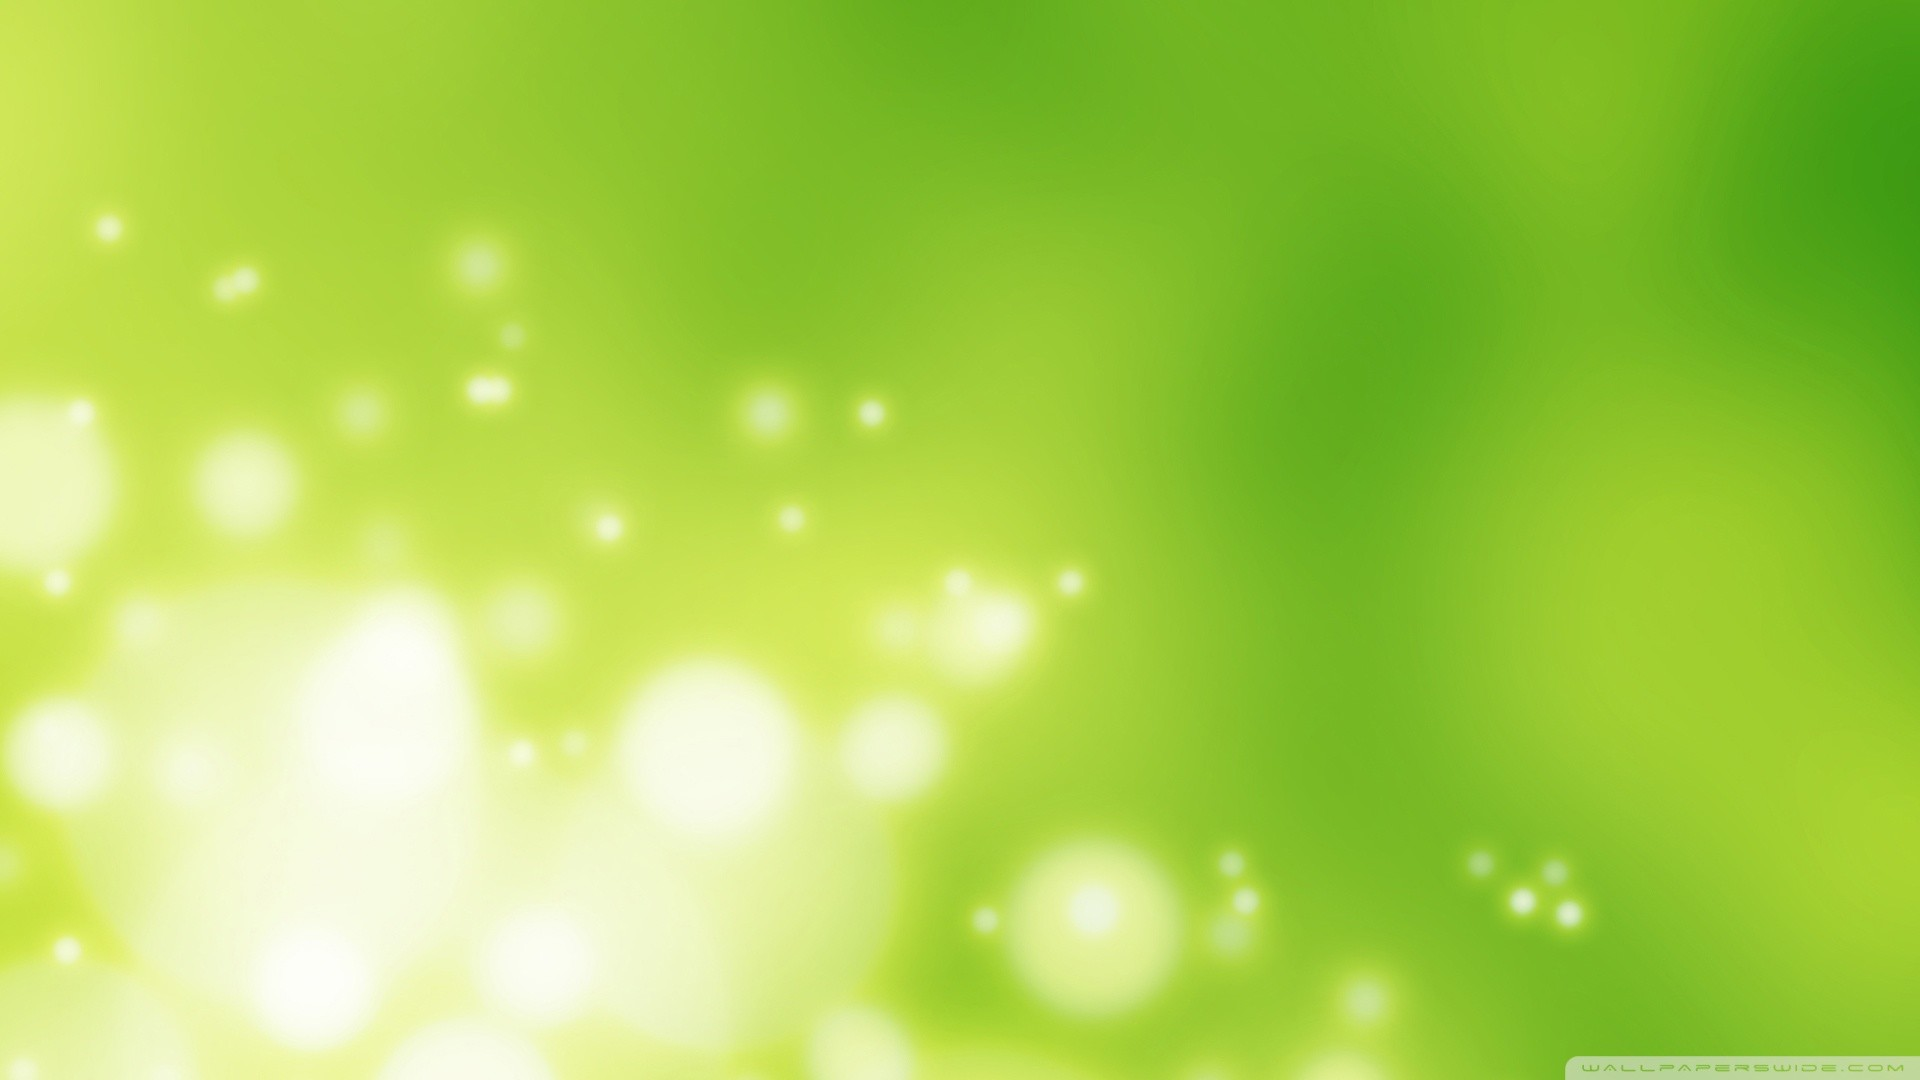 1920x1080 Light Green Wallpaper